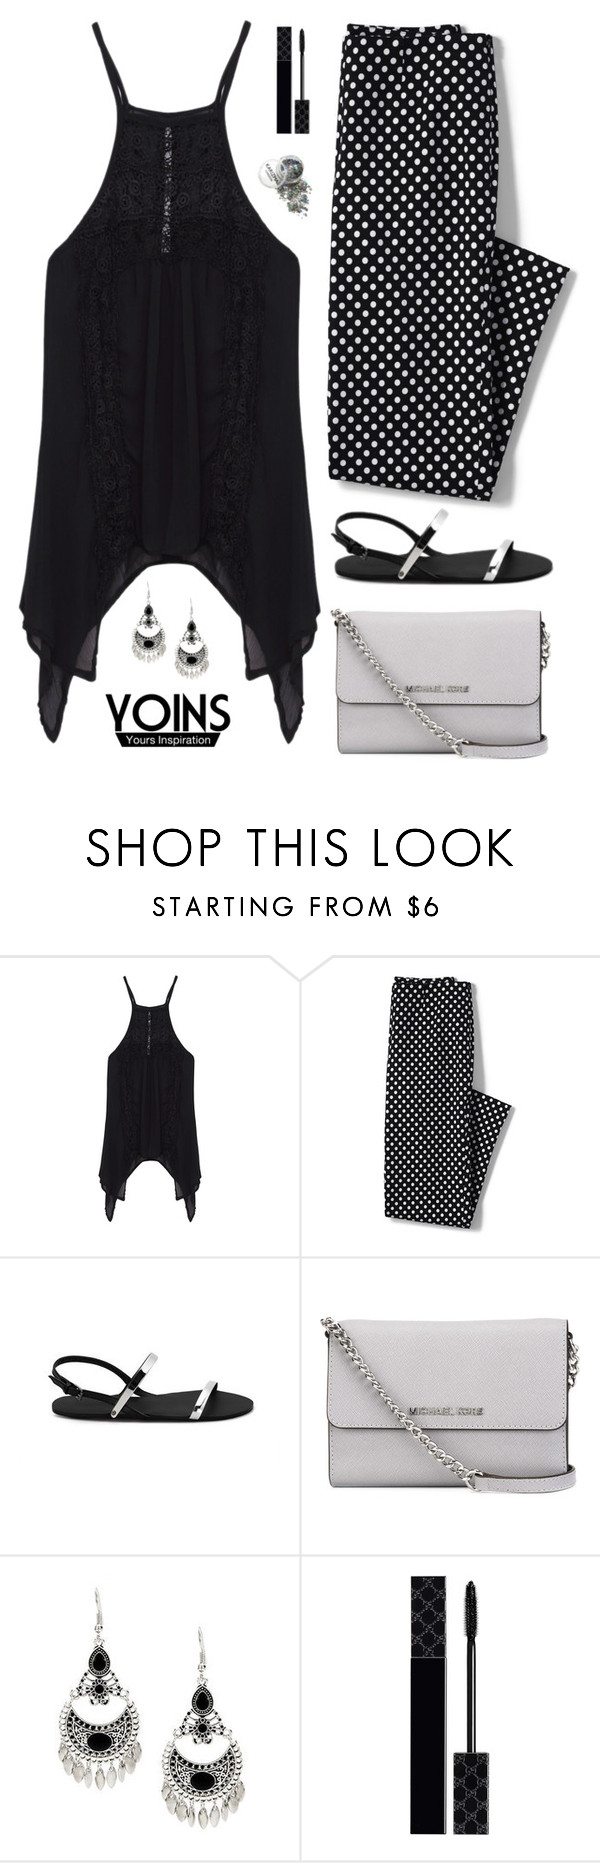 """""""Yoins #16"""" by ellyg91 ❤ liked on Polyvore featuring Lands' End, MICHAEL Michael Kors, Gucci, yoins, yoinscollection and loveyoins"""